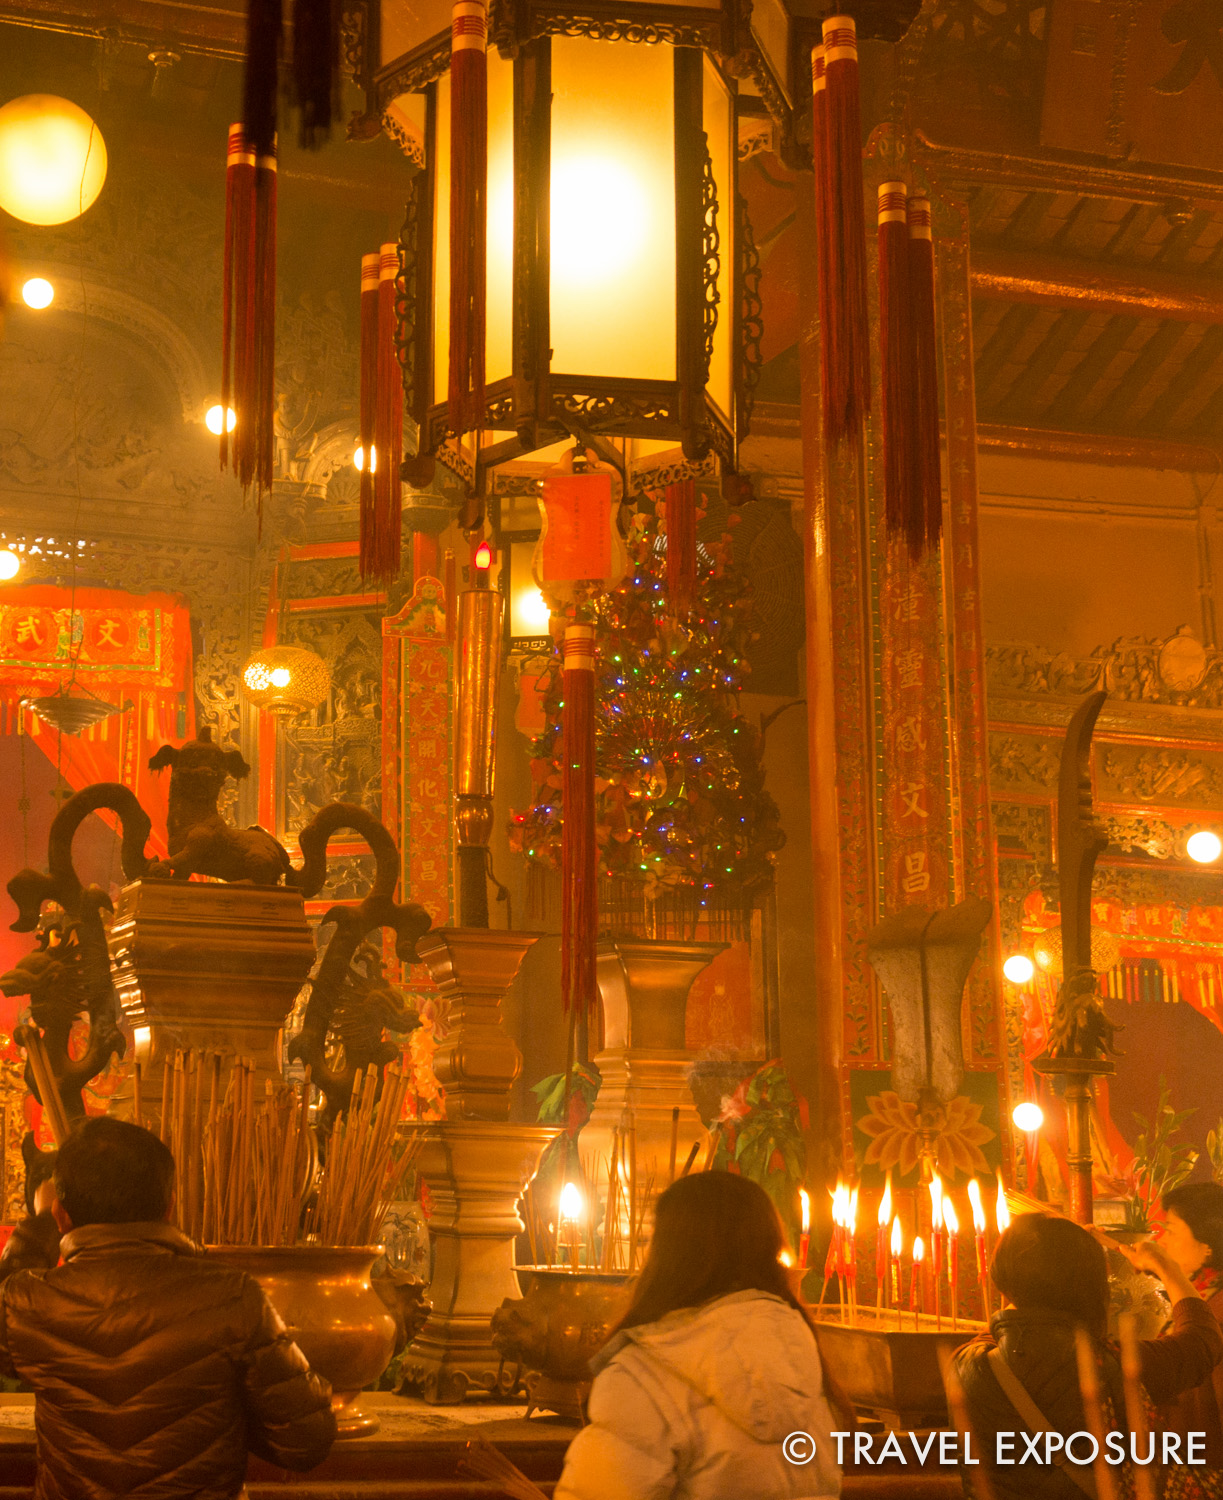 Inside the Man Mo temple, worshippers light incense sticks and place them in bronze urns to bring good fortune.